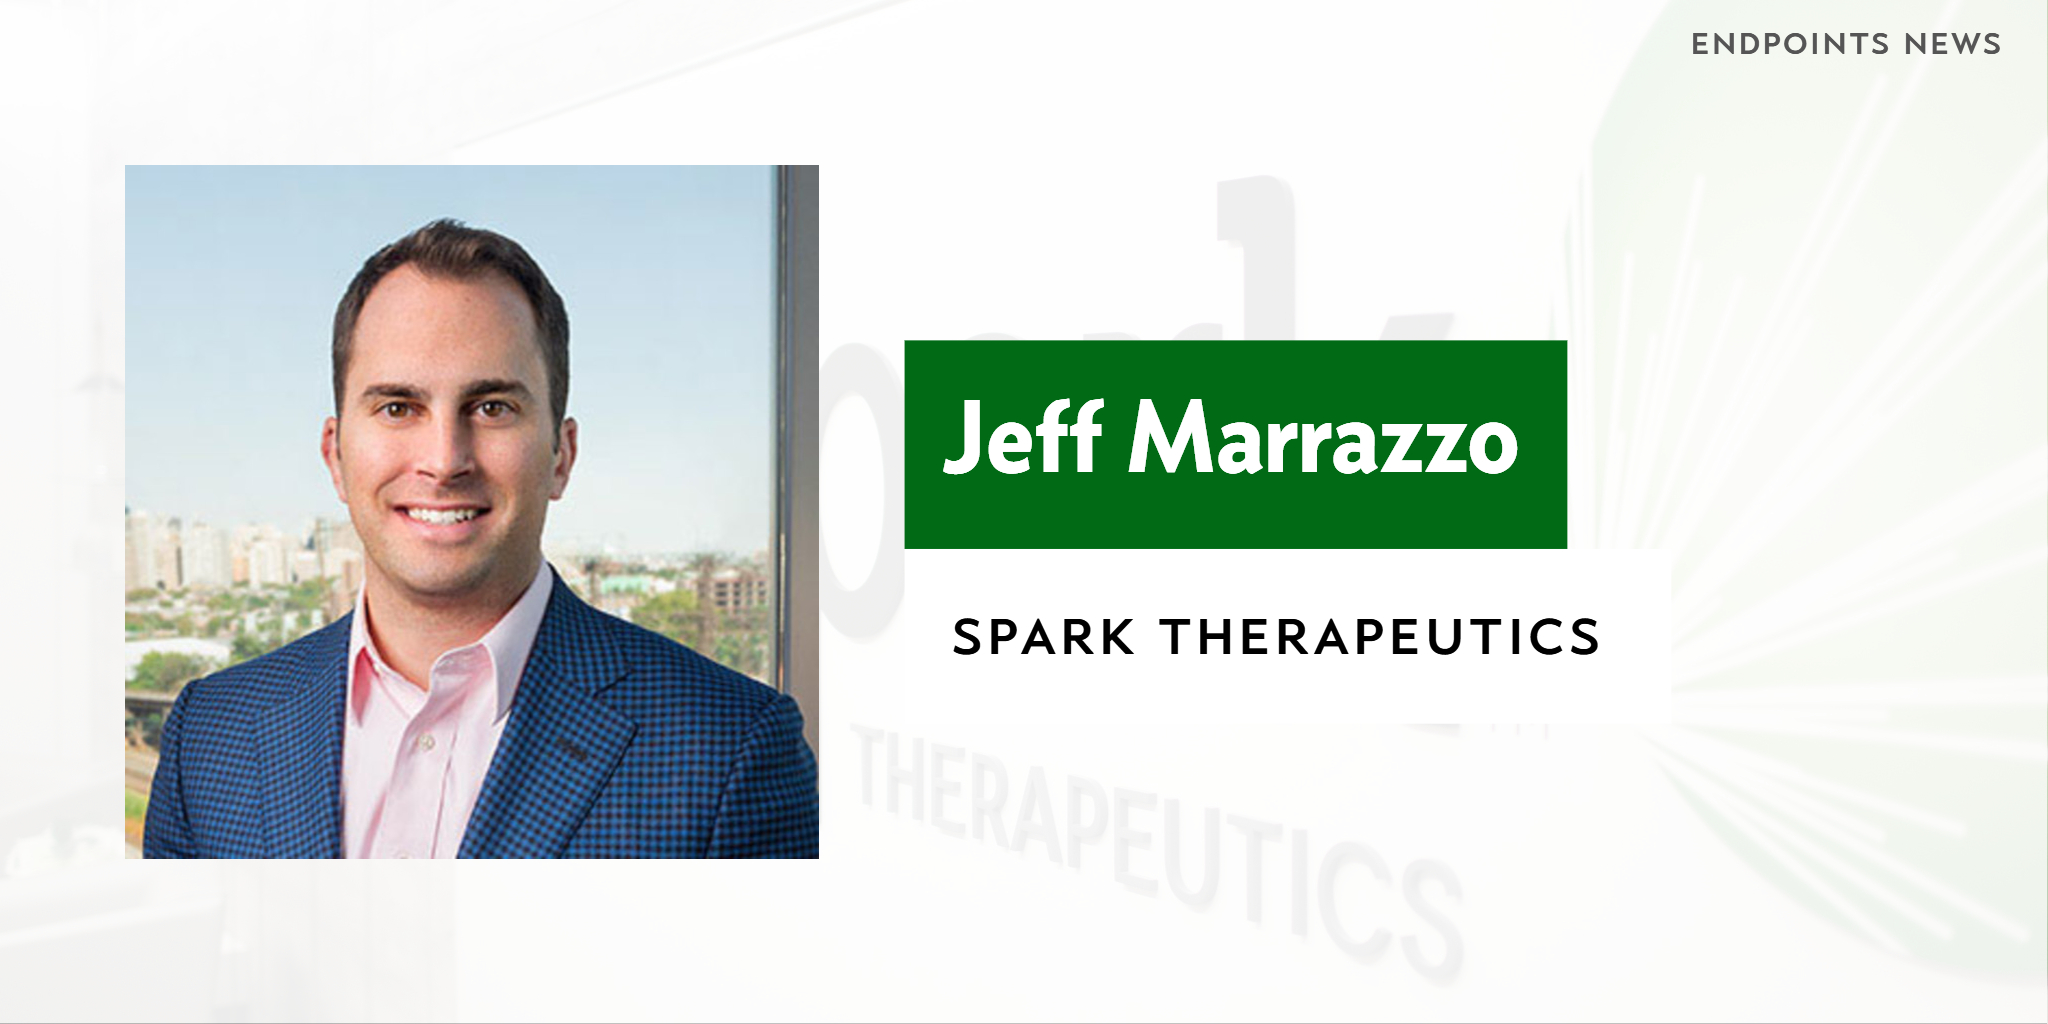 Spark Therapeutics offers medicine for treatment of rare inherited form of blindness